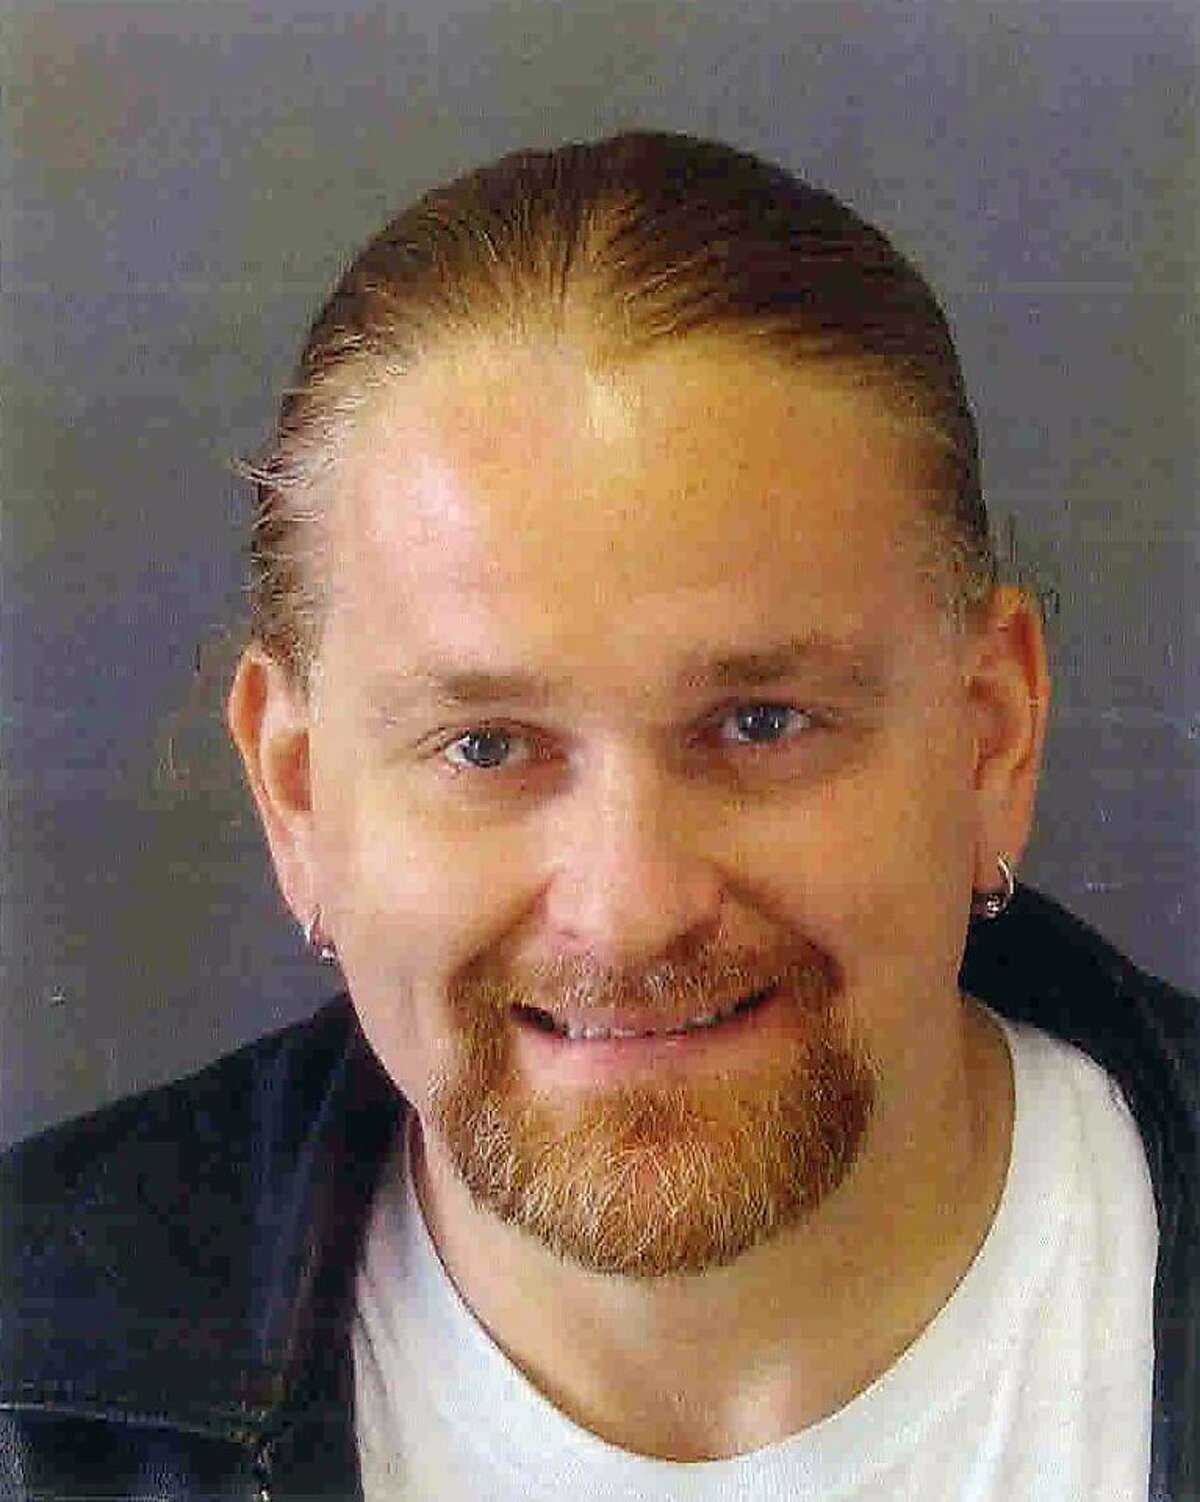 Abraham Taylor, 36, was sentenced to 60 days in county jail on Thursday, Oct. 18, 2012 for starving four of his dogs.